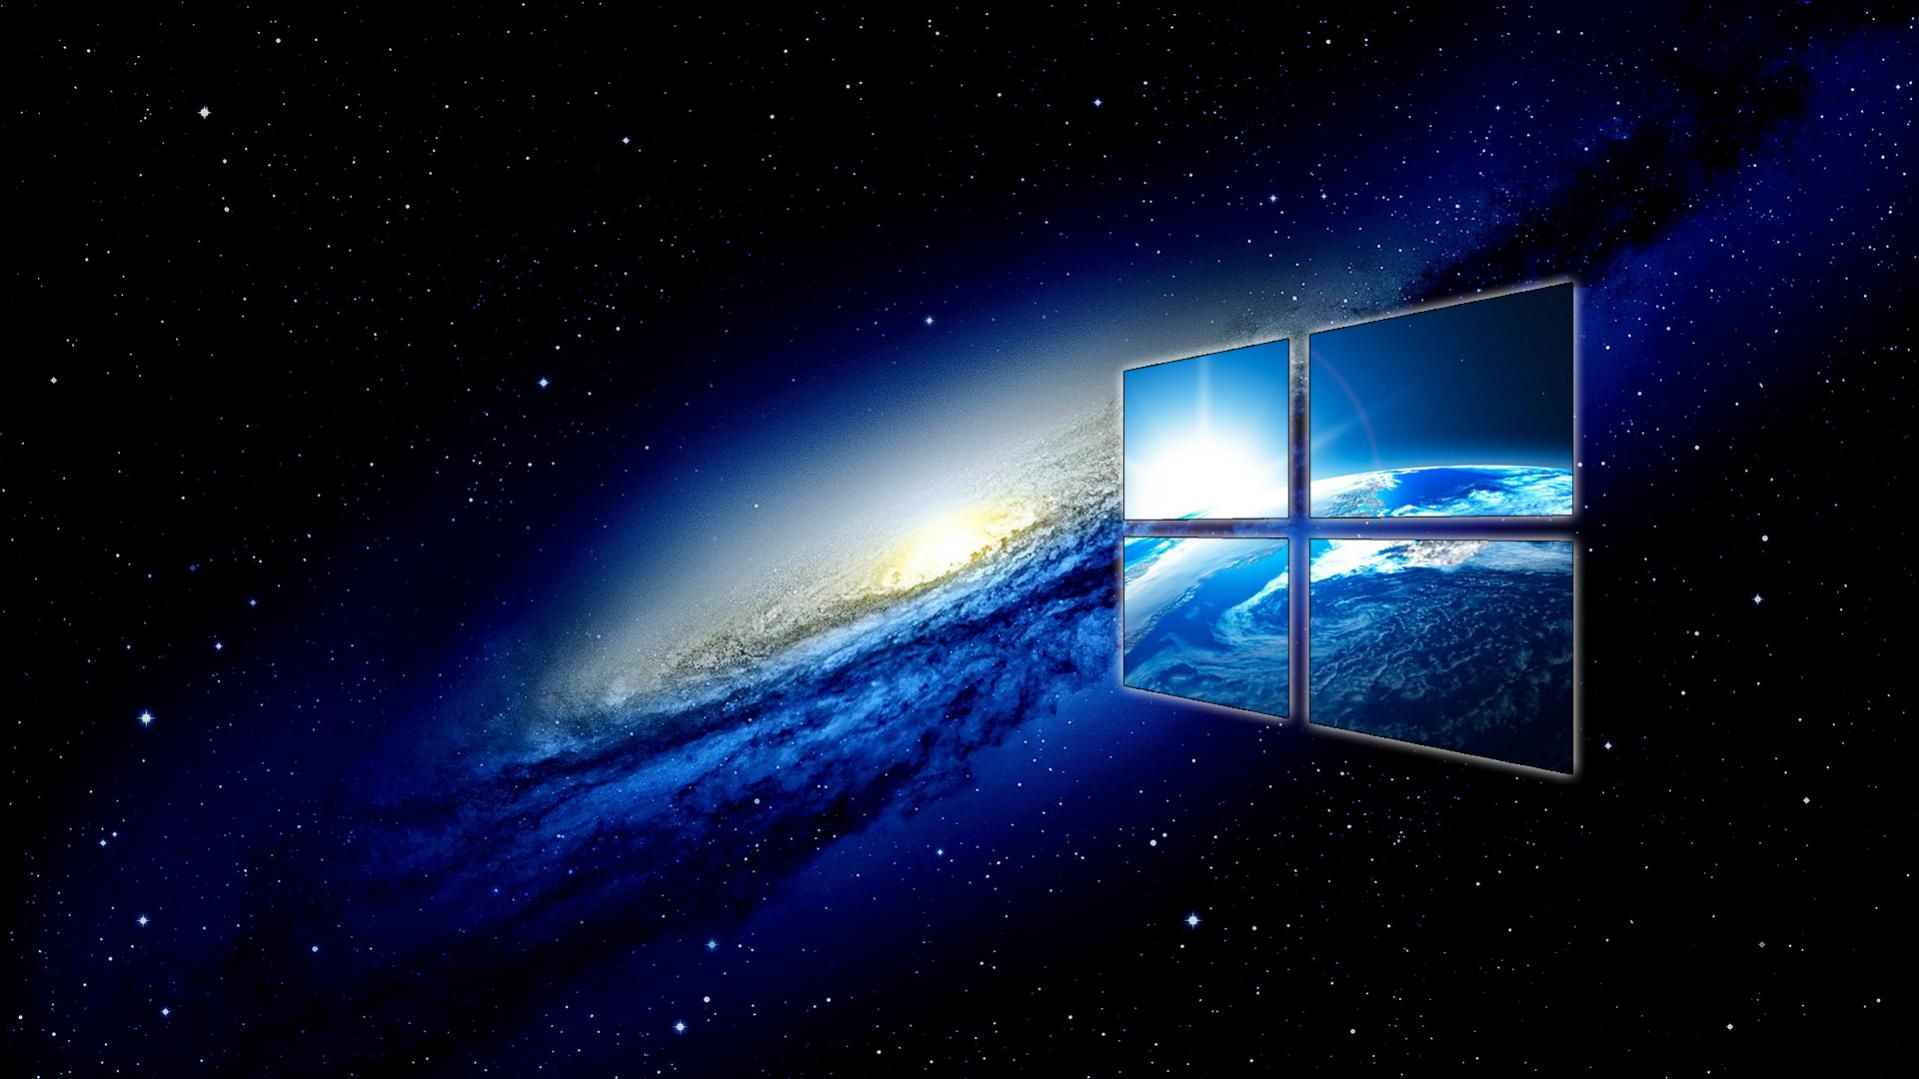 Window 10 Wallpaper Full Hd Windows 10 Background Wallpaper Windows 10 Windows Wallpaper